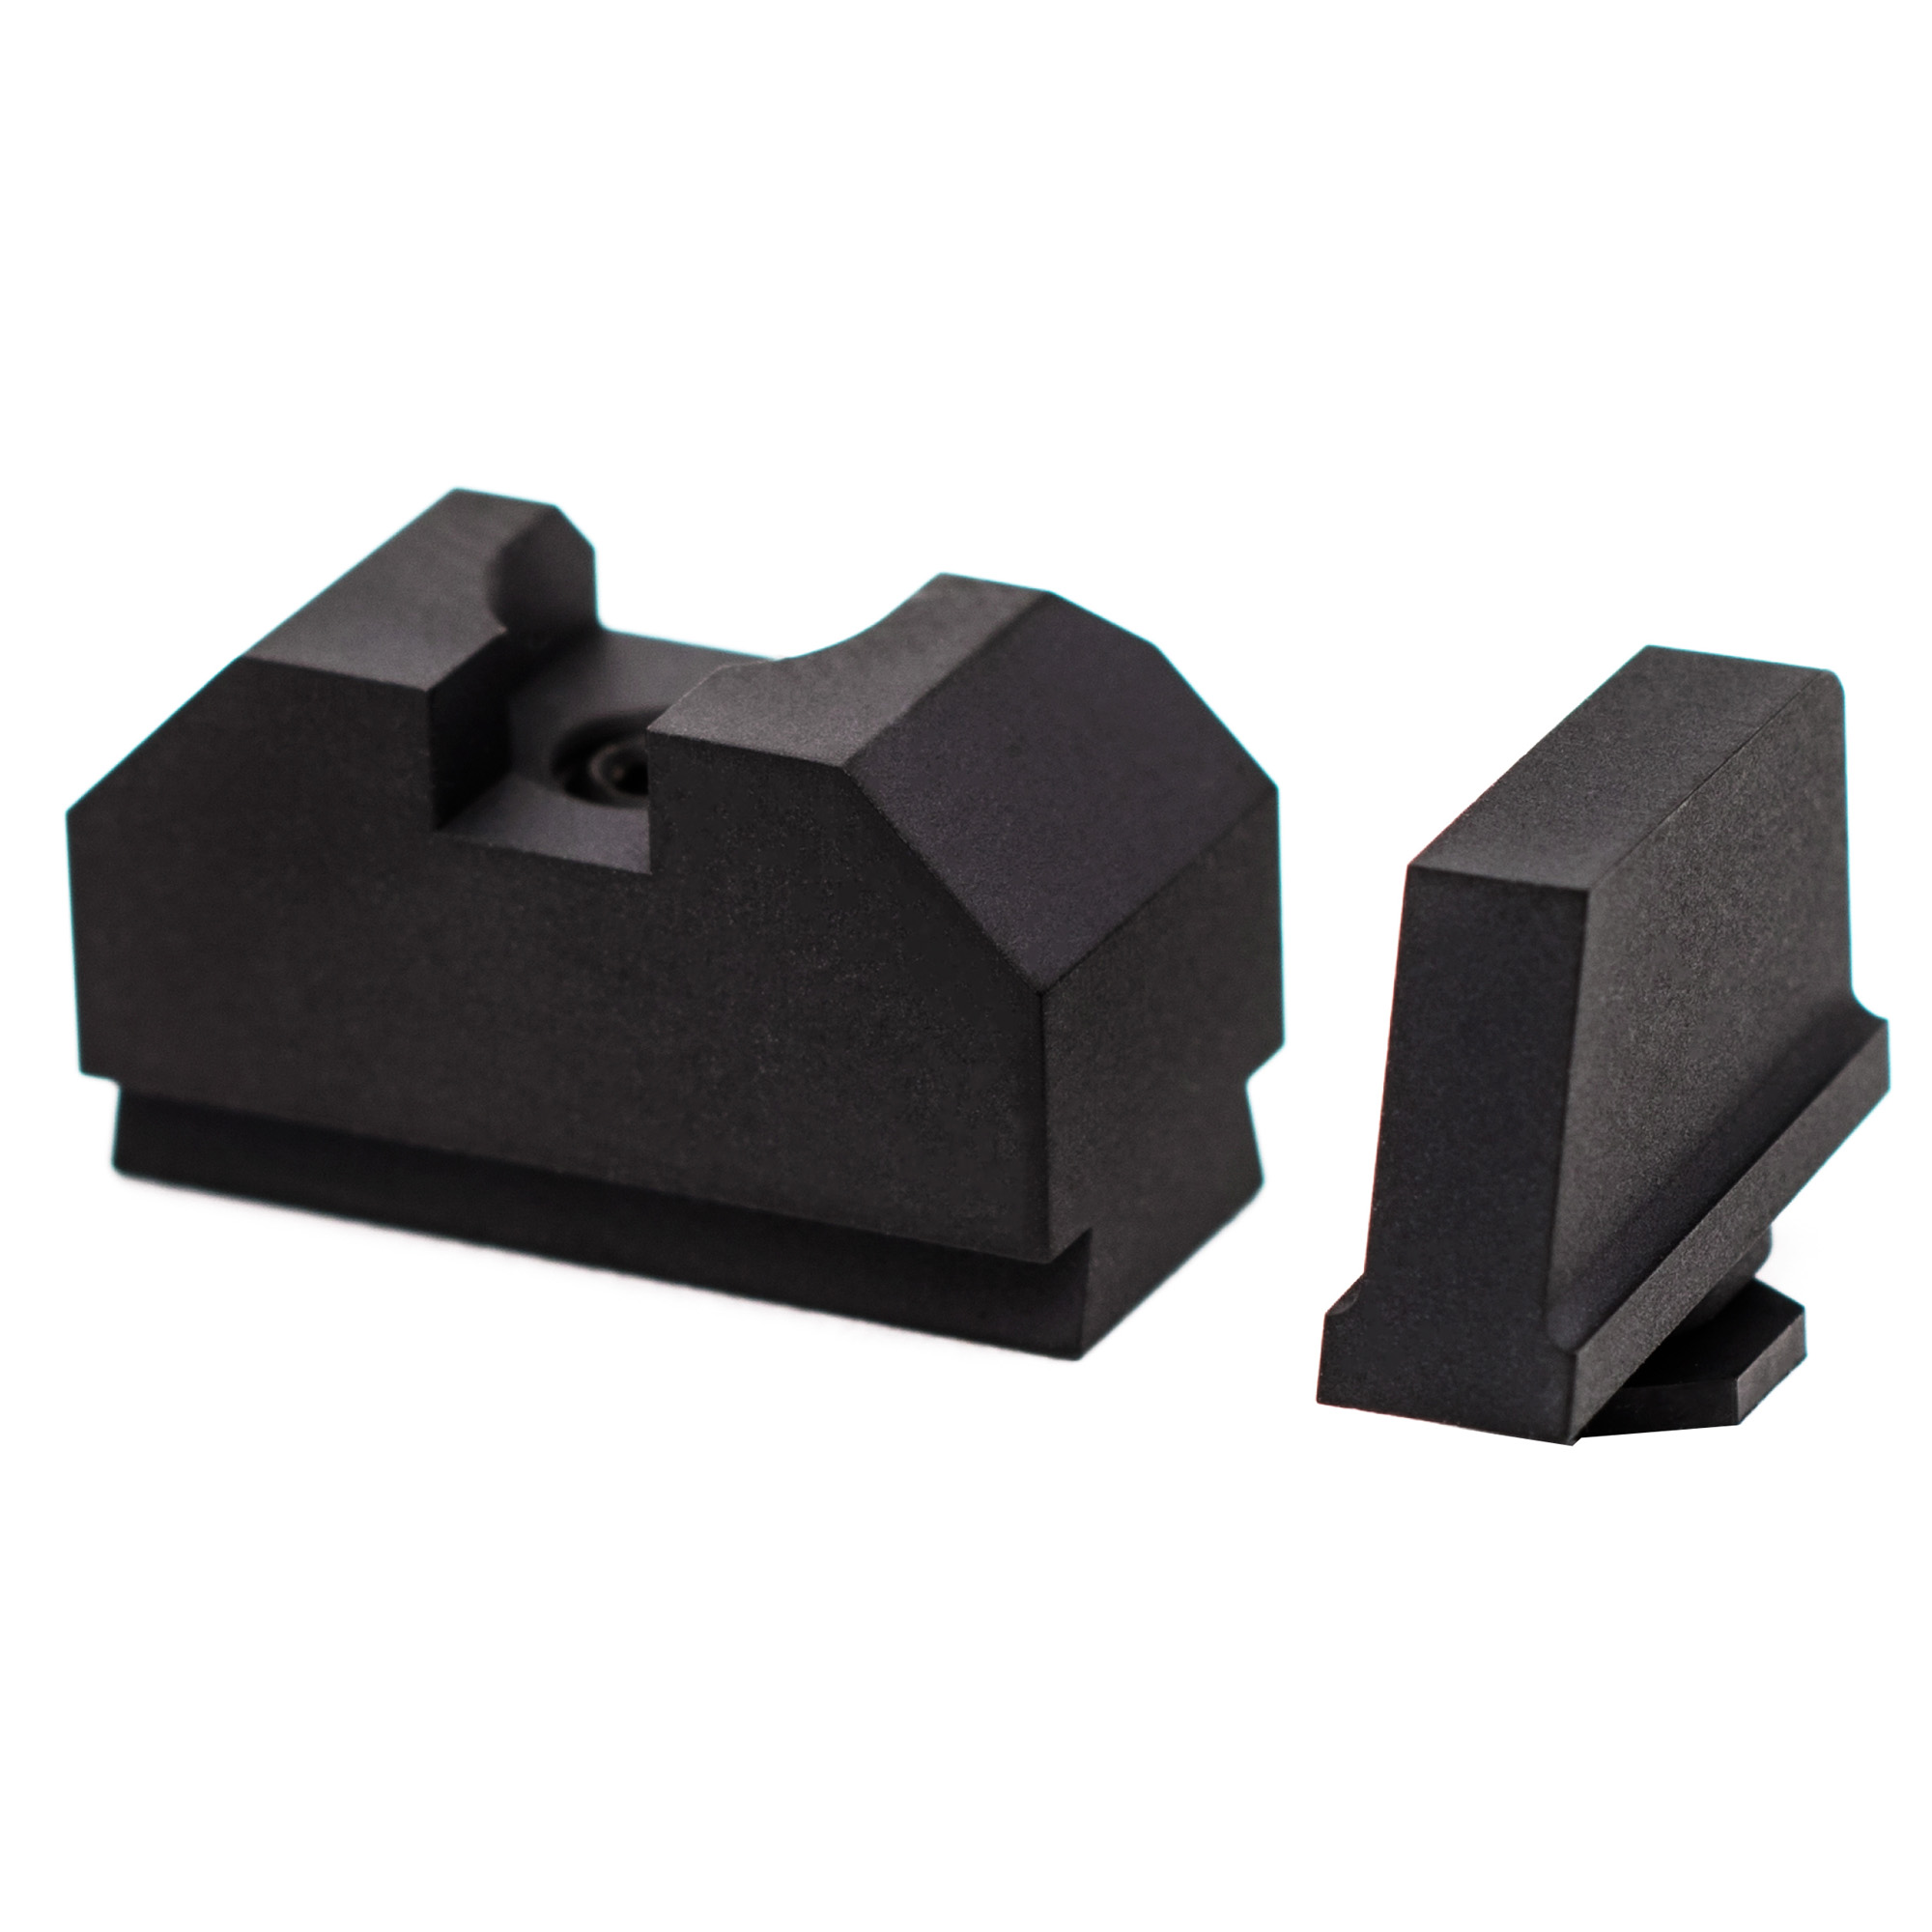 """ZEV backup iron sights (BUIS) are designed to be used with one of the many mini red dot sights available on the market - such as Trijicons RMR. Because of this"""" ZEV Co-Witness Sight Sets are an excellent addition for either absolute or 1/3 co-witness applications. These fiber optic sight sets are an inexpensive addition that Glock owners can make to their firearm."""